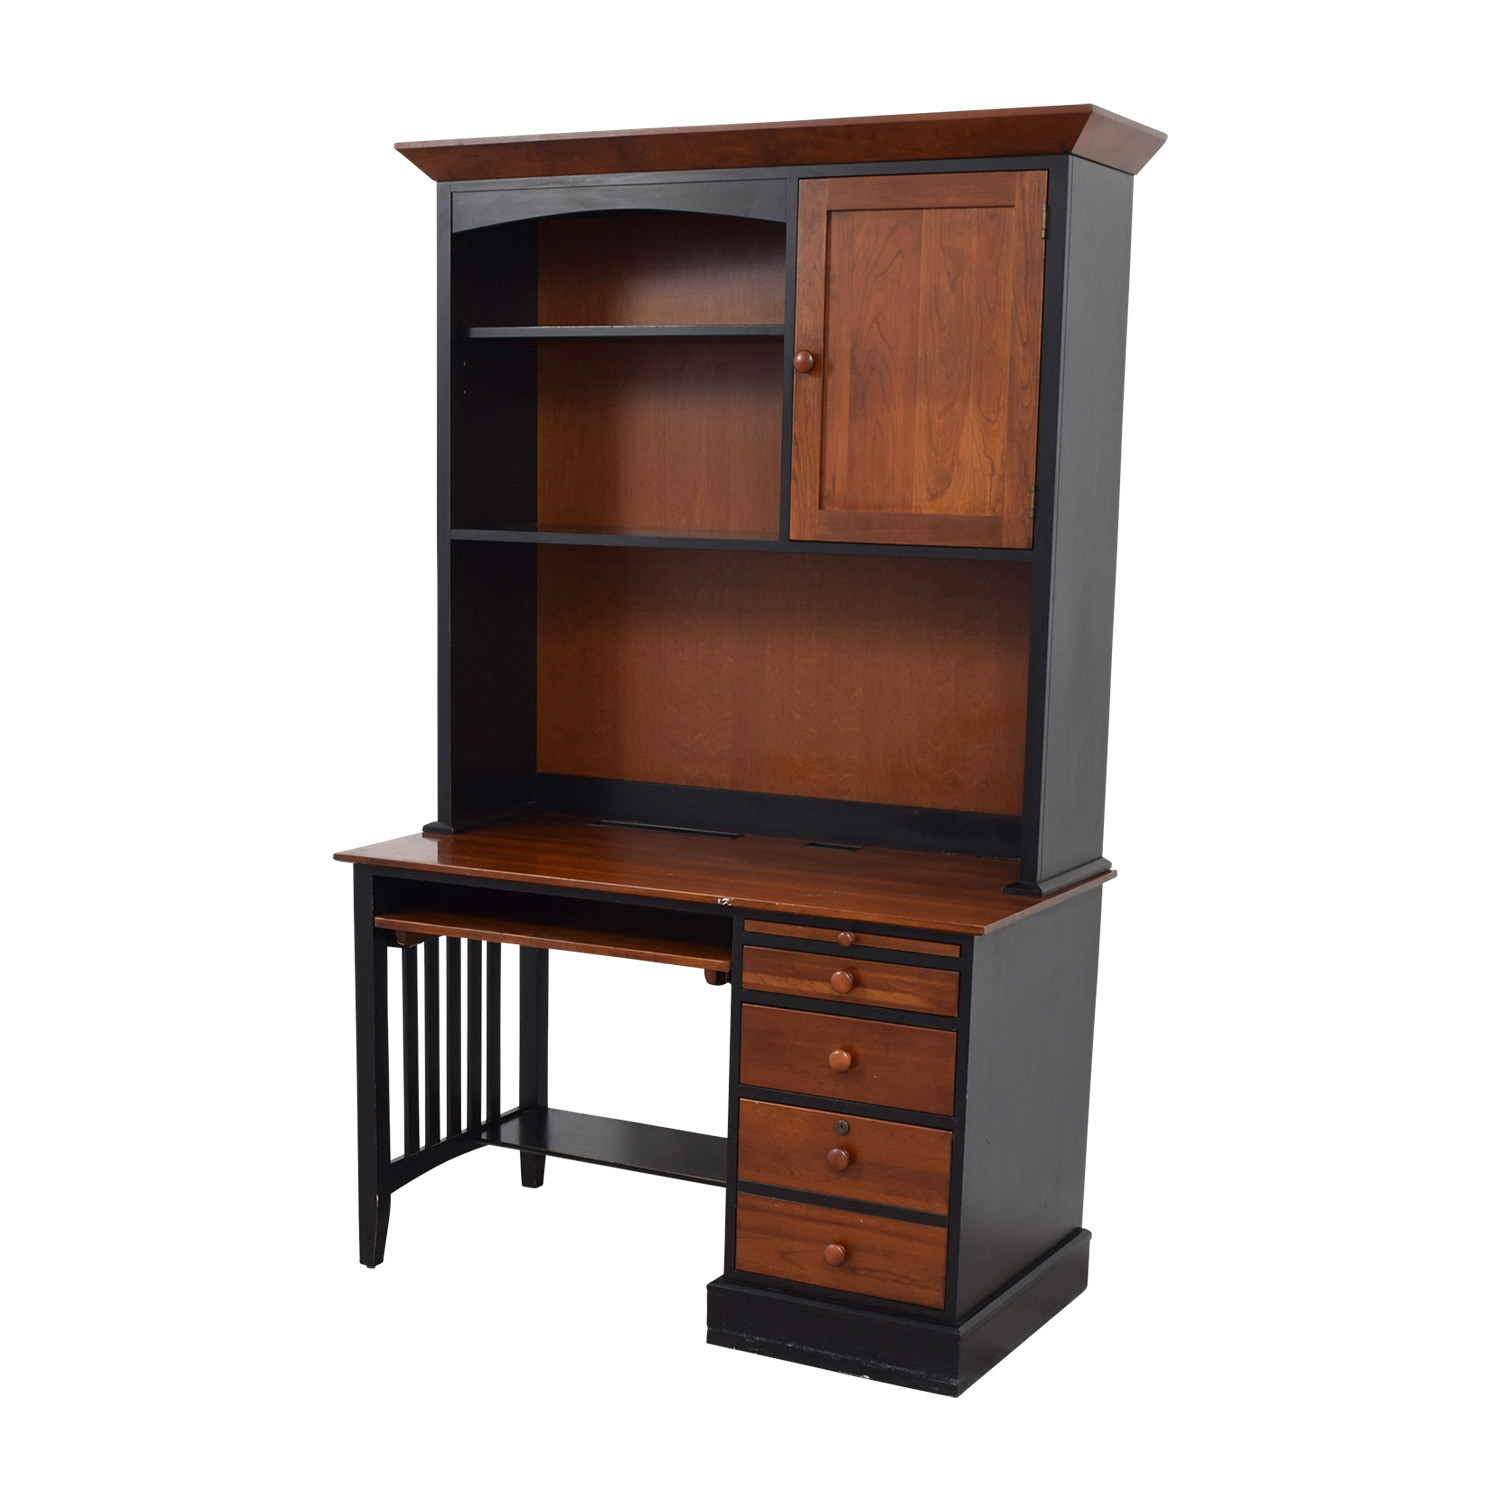 OFF Ethan Allen Ethan Allen Cherry Wood Black Desk With - Desks for home office ethan allen